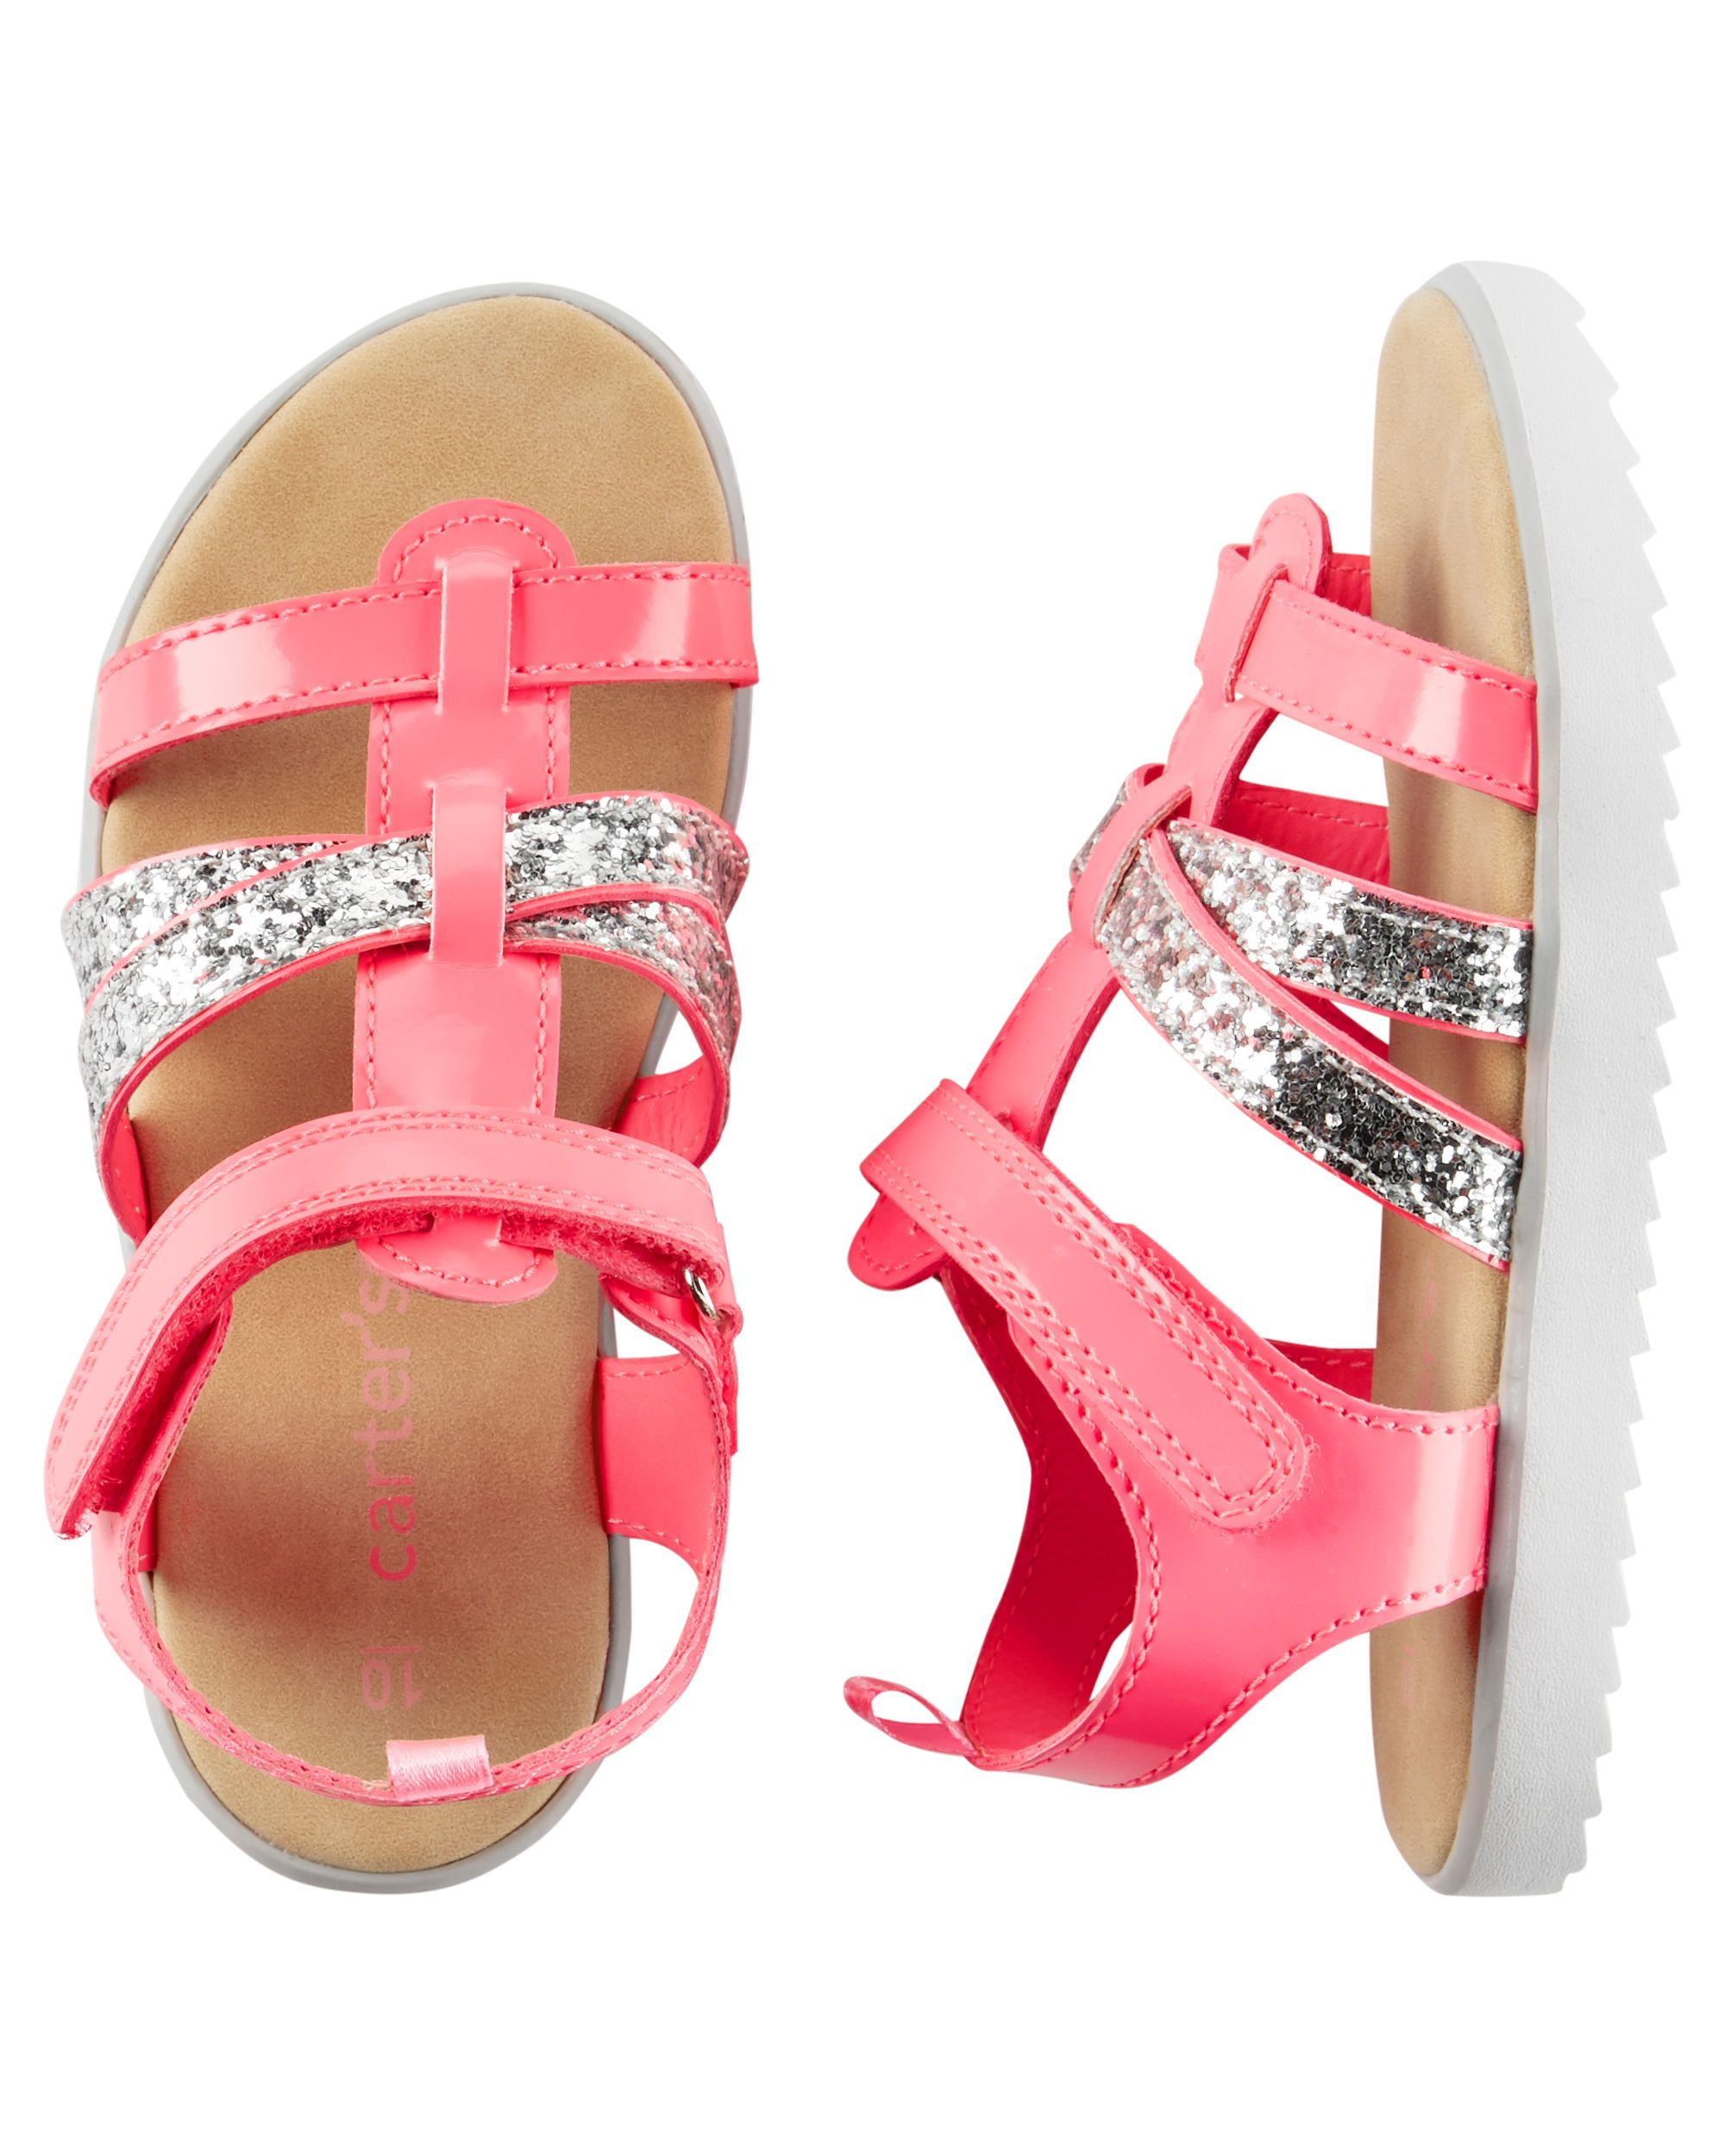 crib kids cribs toms baby nordstrom sale shoes c